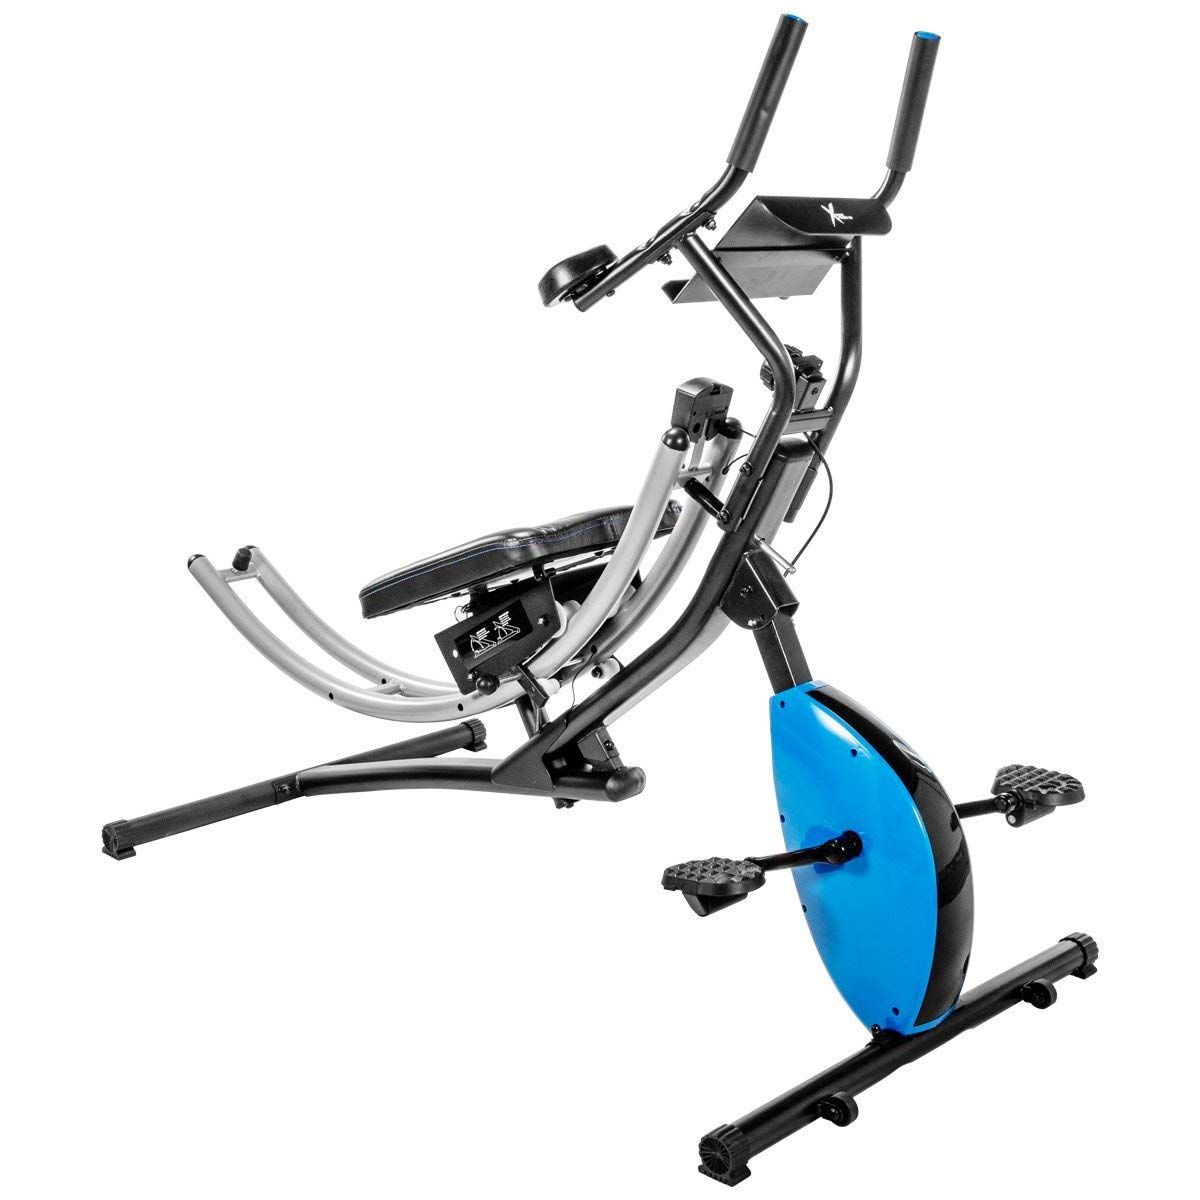 Xtremepowerus Abdominal Crunch Coaster Exercise Bike 2 In 1 Fitness Machine Biking Workout Workout Machines Stationary Cycle